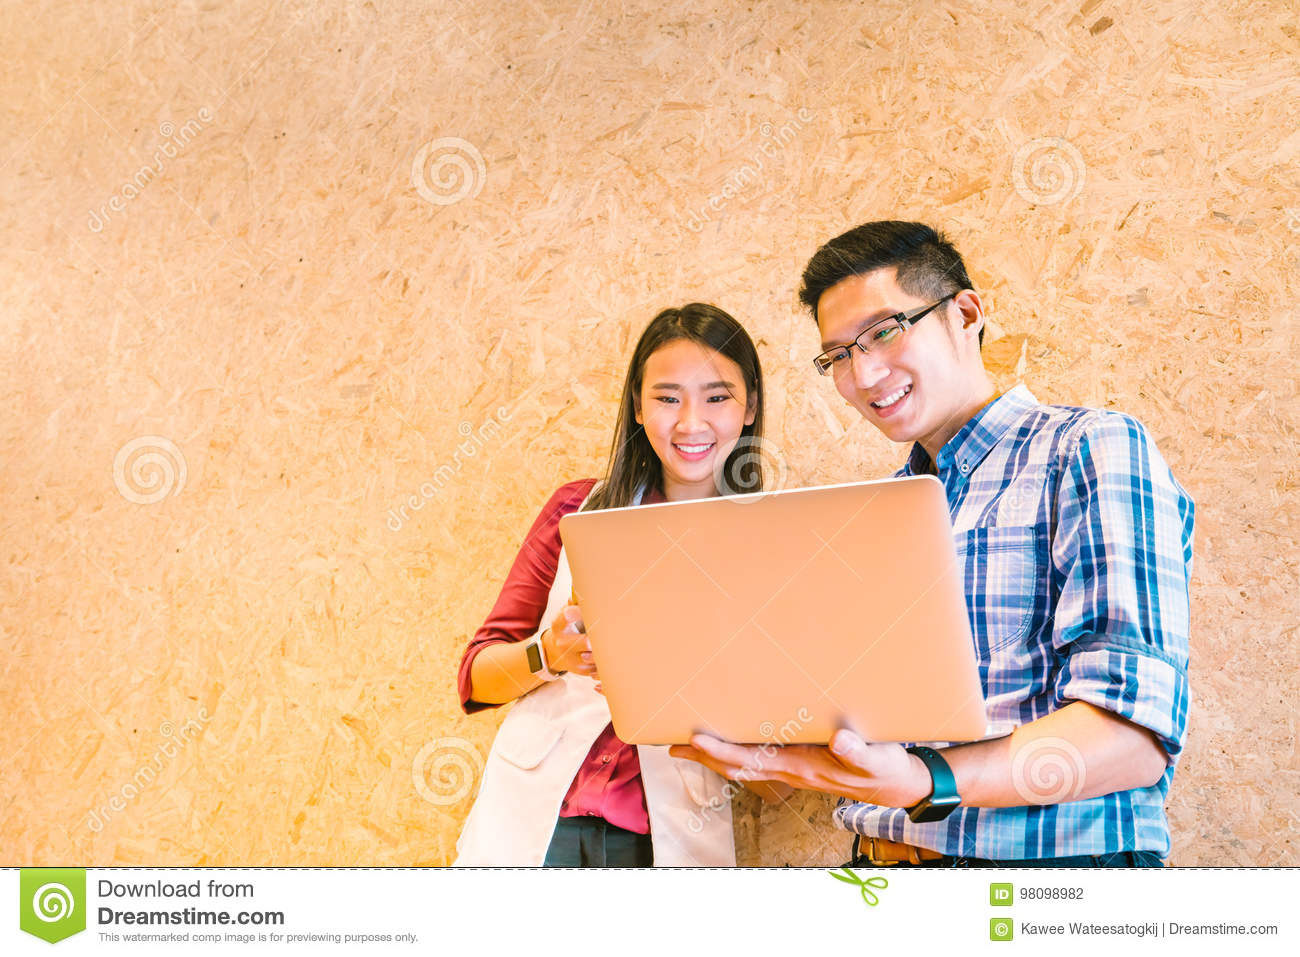 Asian coworker or college student team using laptop computer together at office or campus. Happy casual business talk